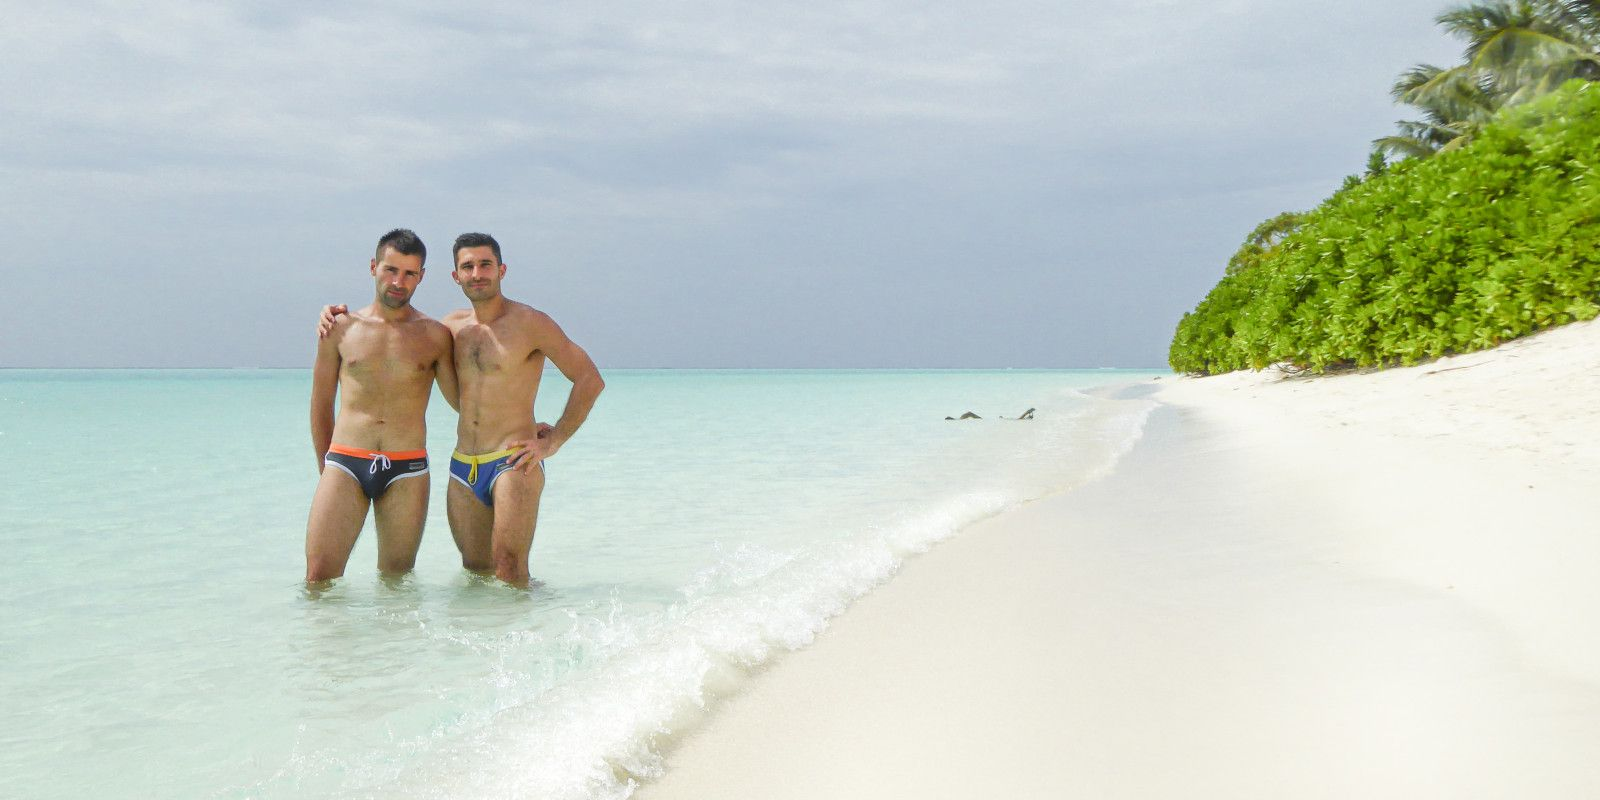 The Maldives is a popular destination for gay honeymooners and LGBTQ travellers